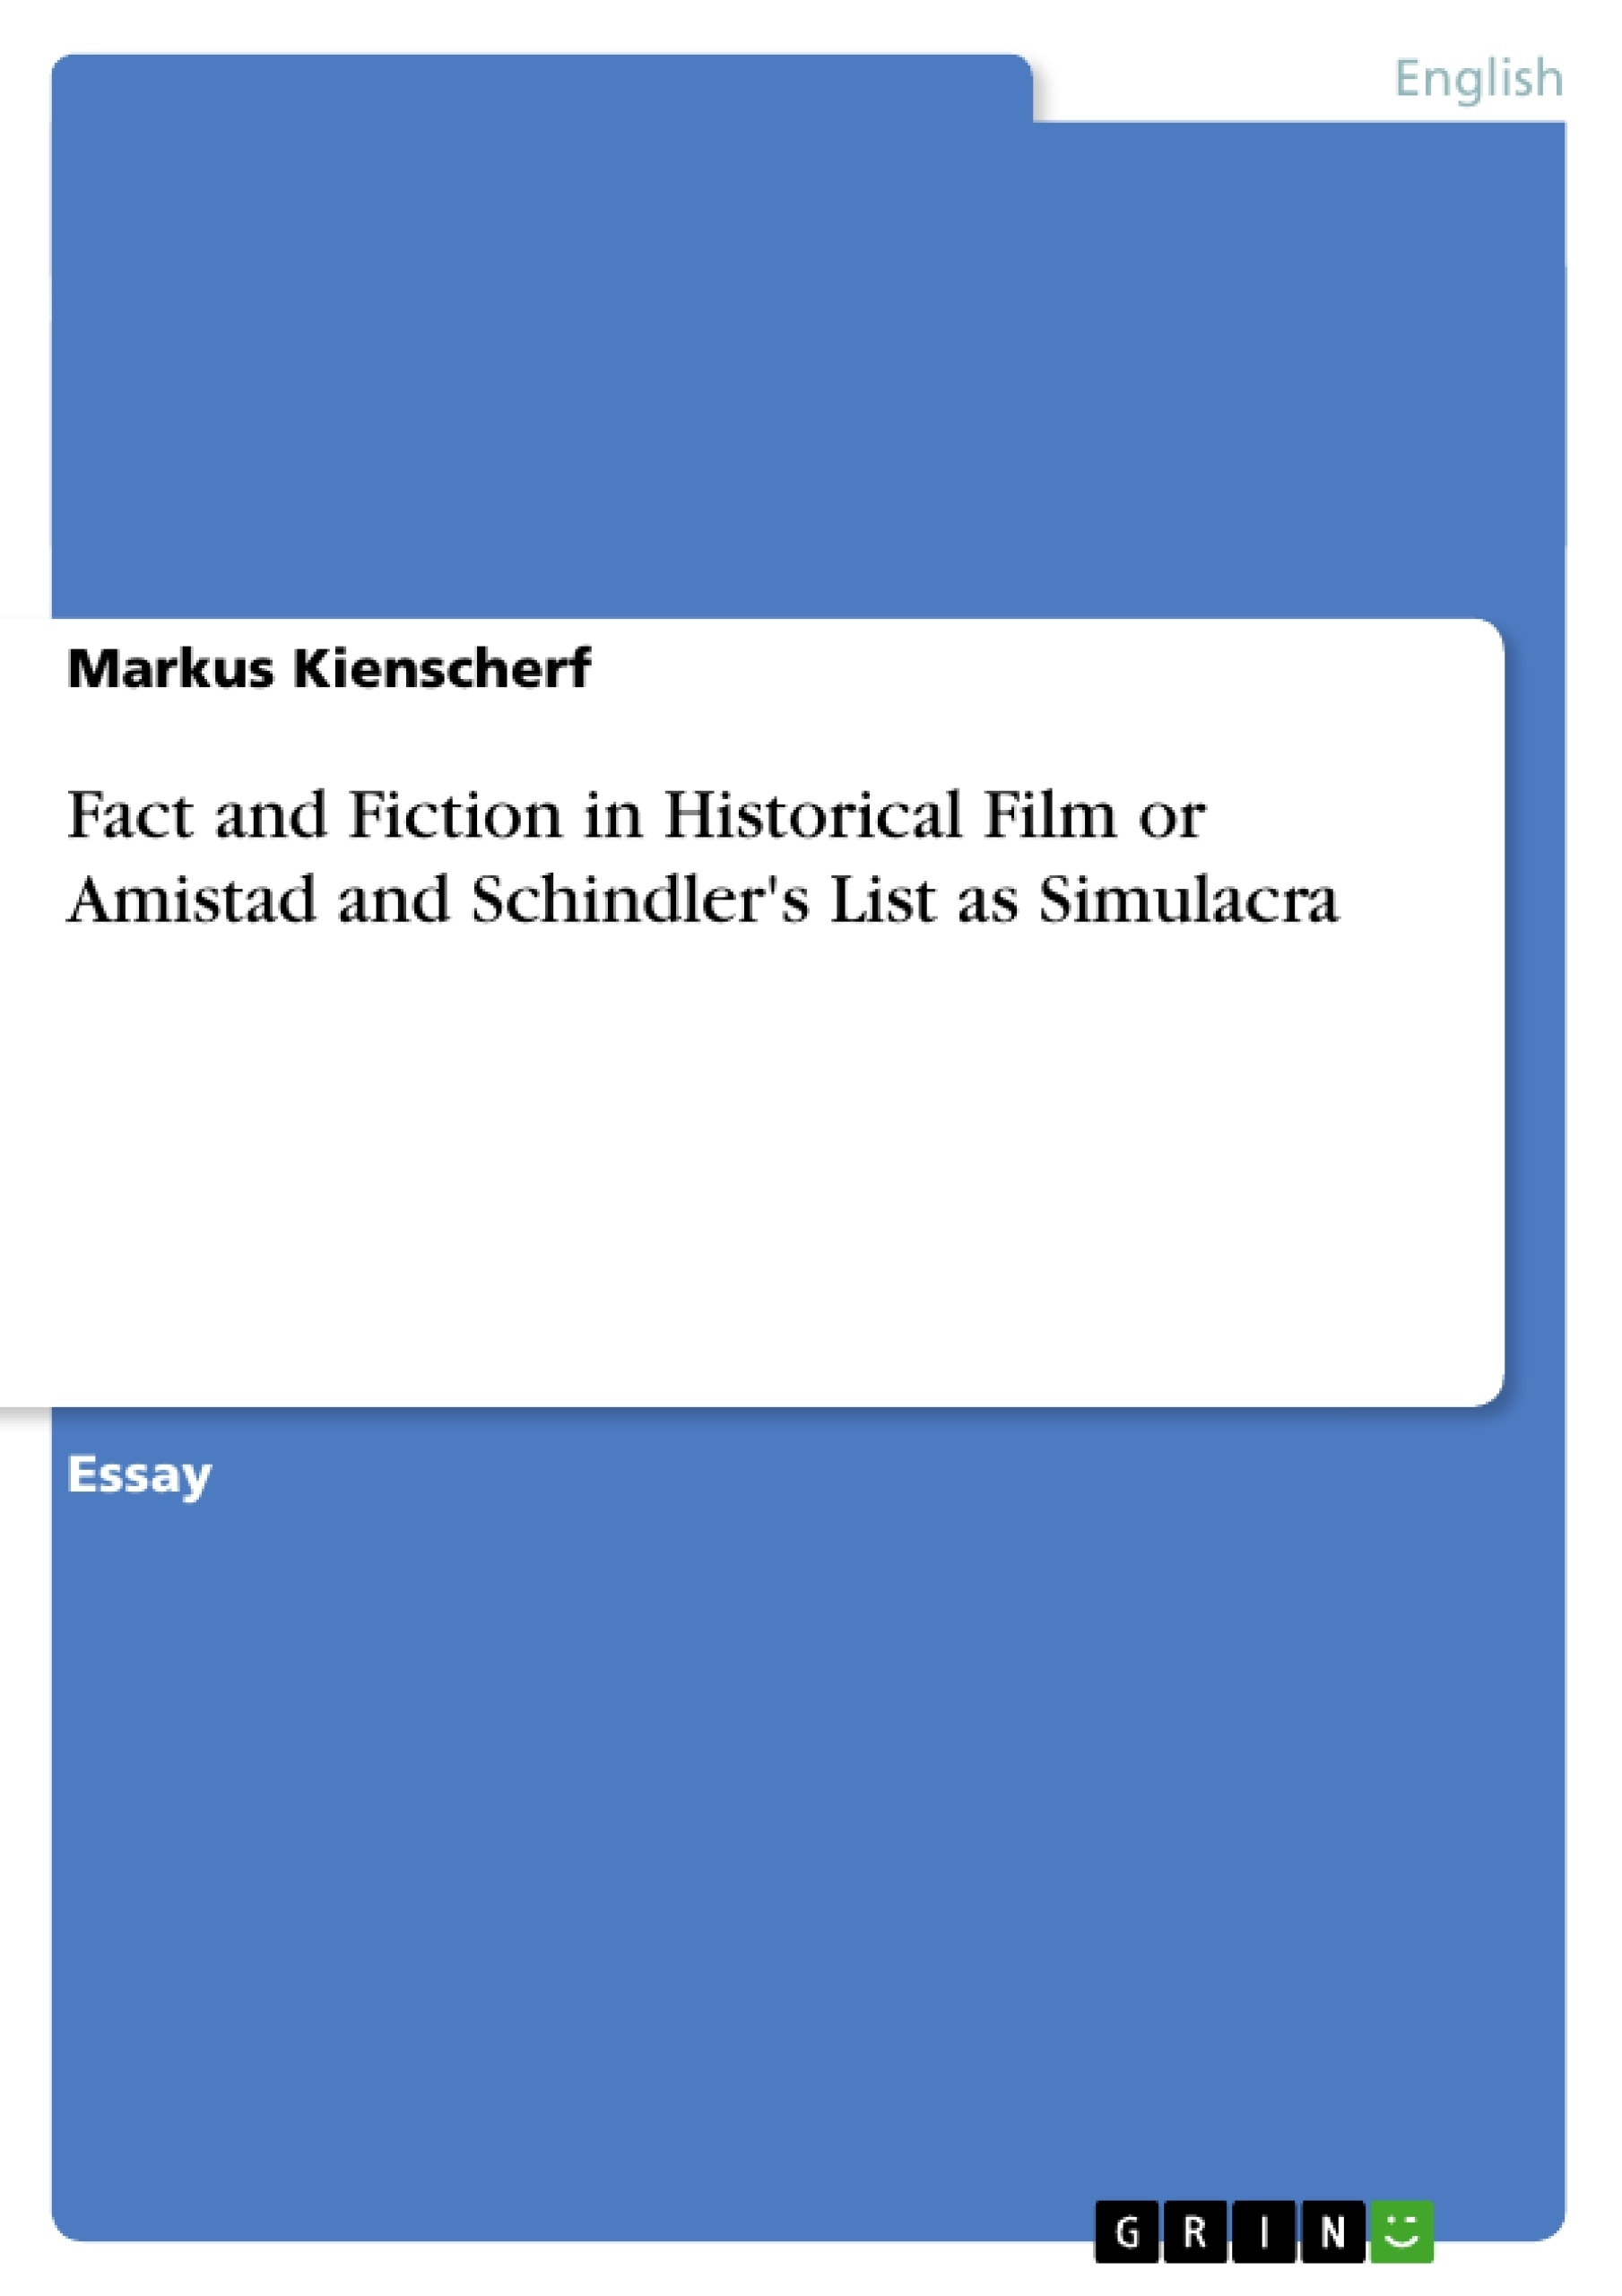 Title: Fact and Fiction in Historical Film or Amistad and Schindler's List as Simulacra